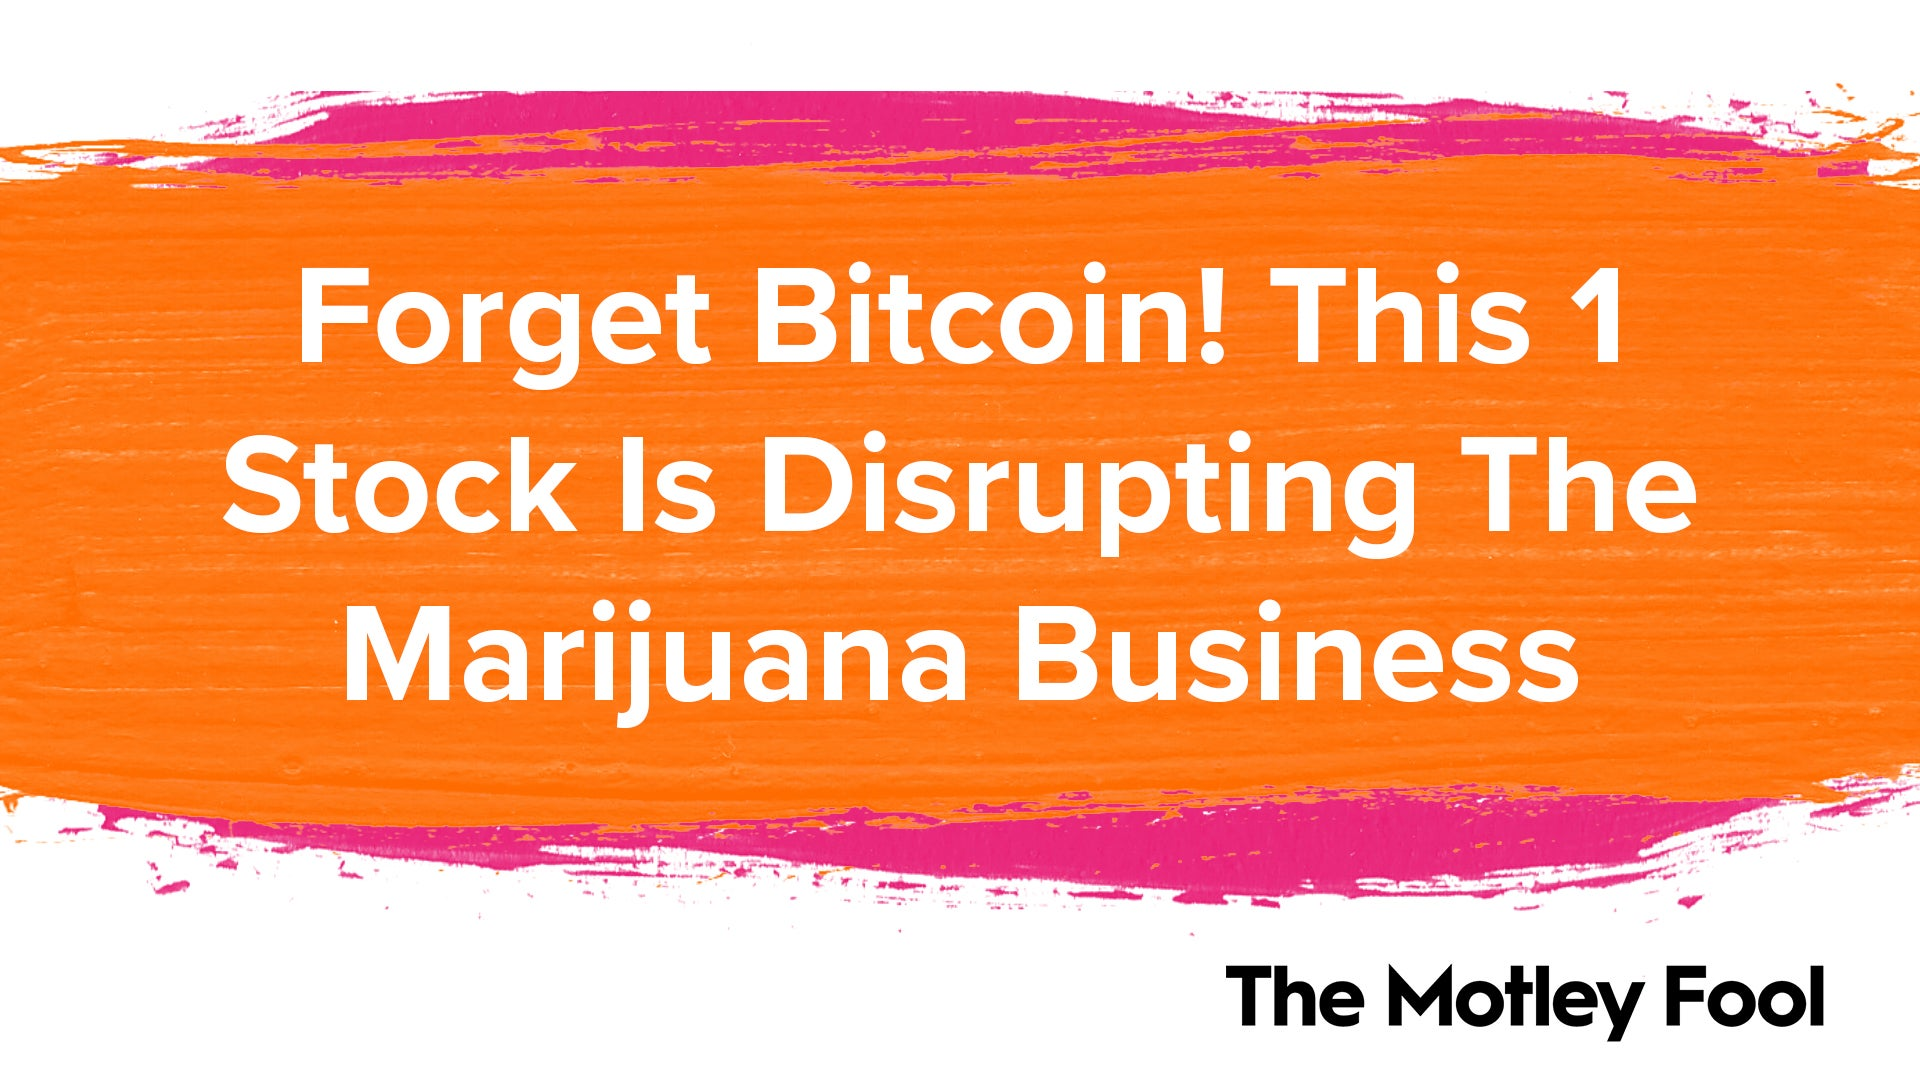 Forget Bitcoin! This 1 Stock Is Disrupting the Marijuana Business